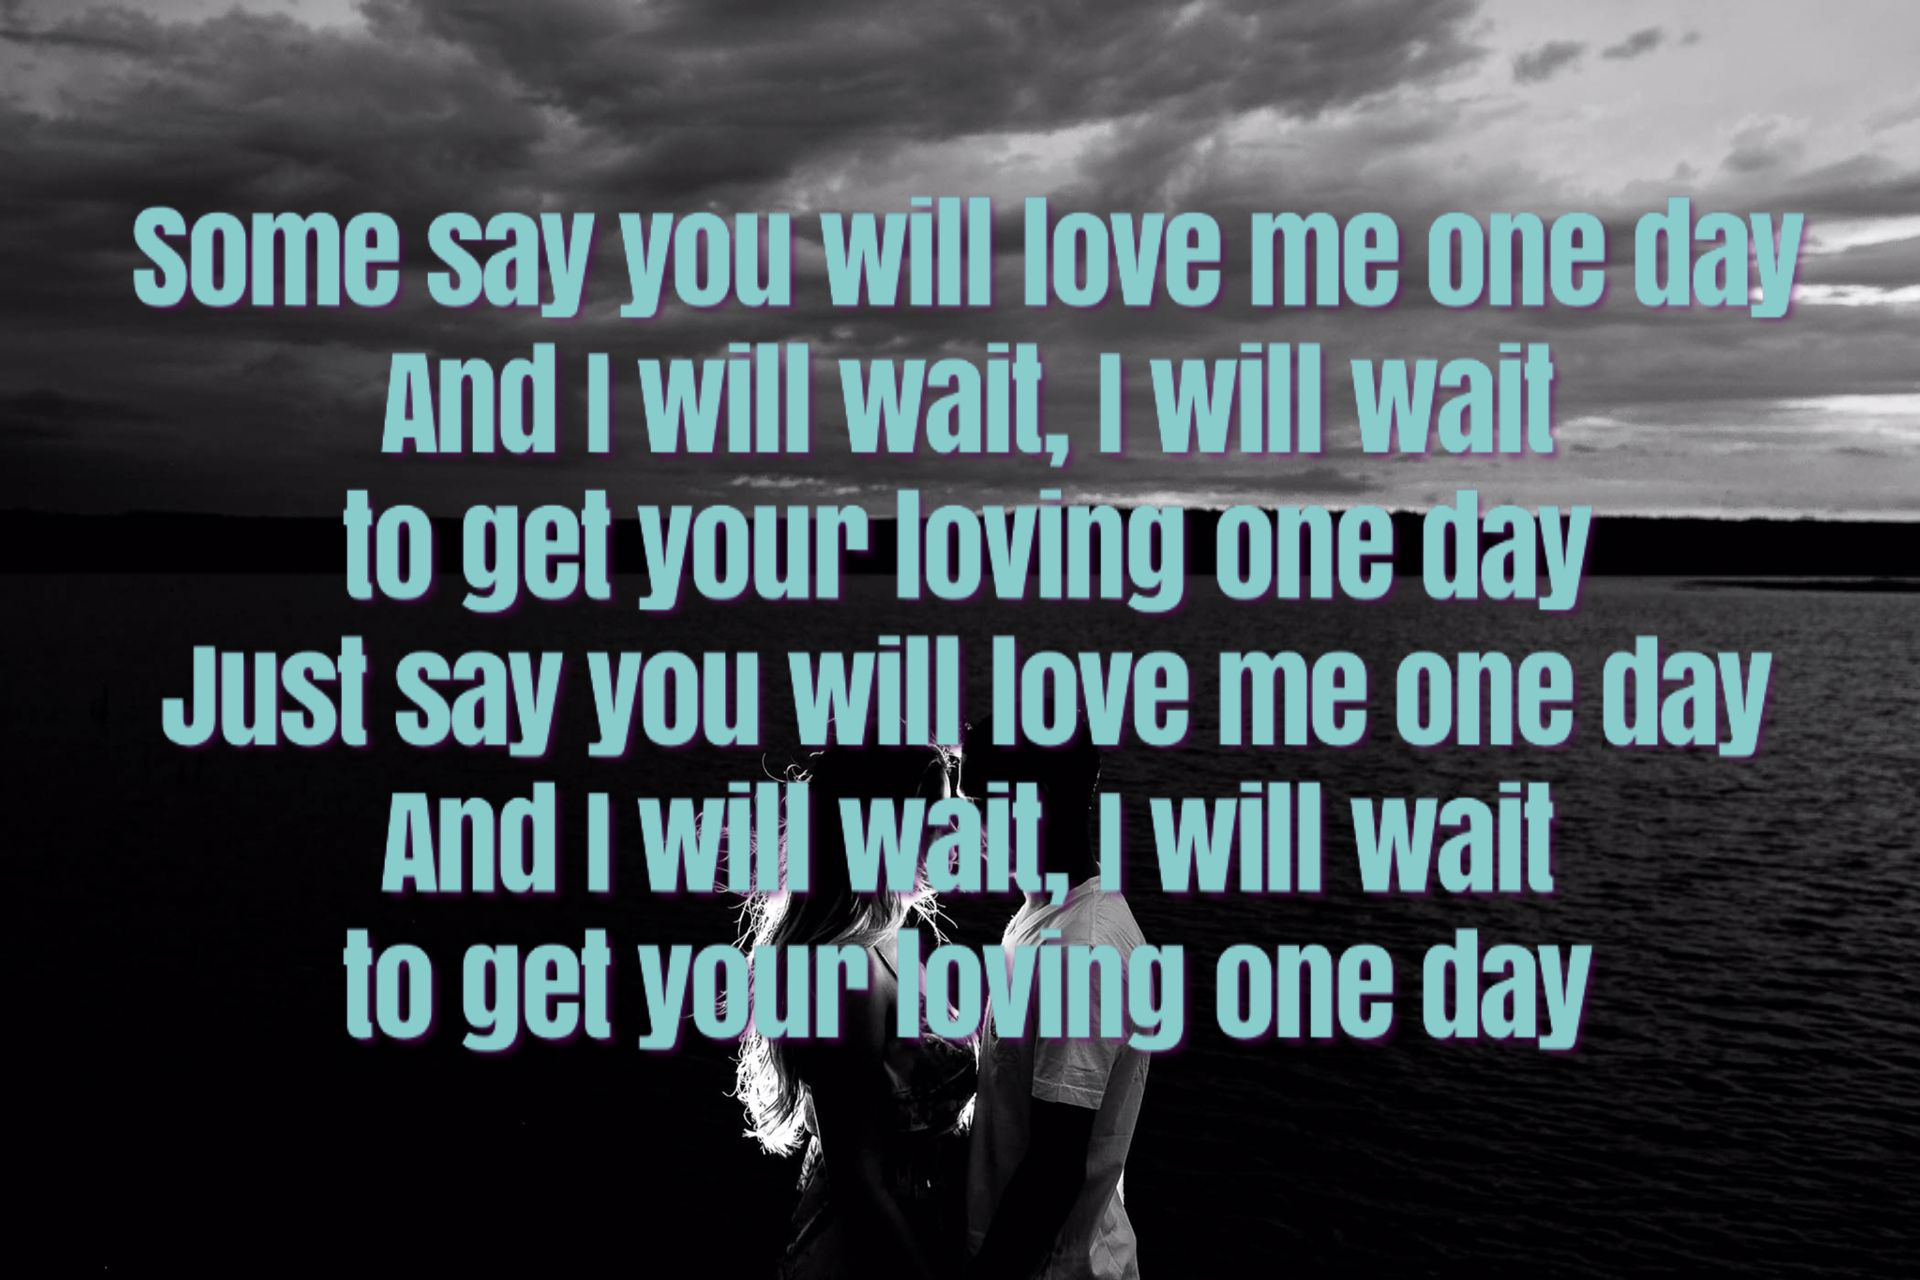 Pin By Gina Krajesky On Song Lyrics In 2020 Sayings My Love